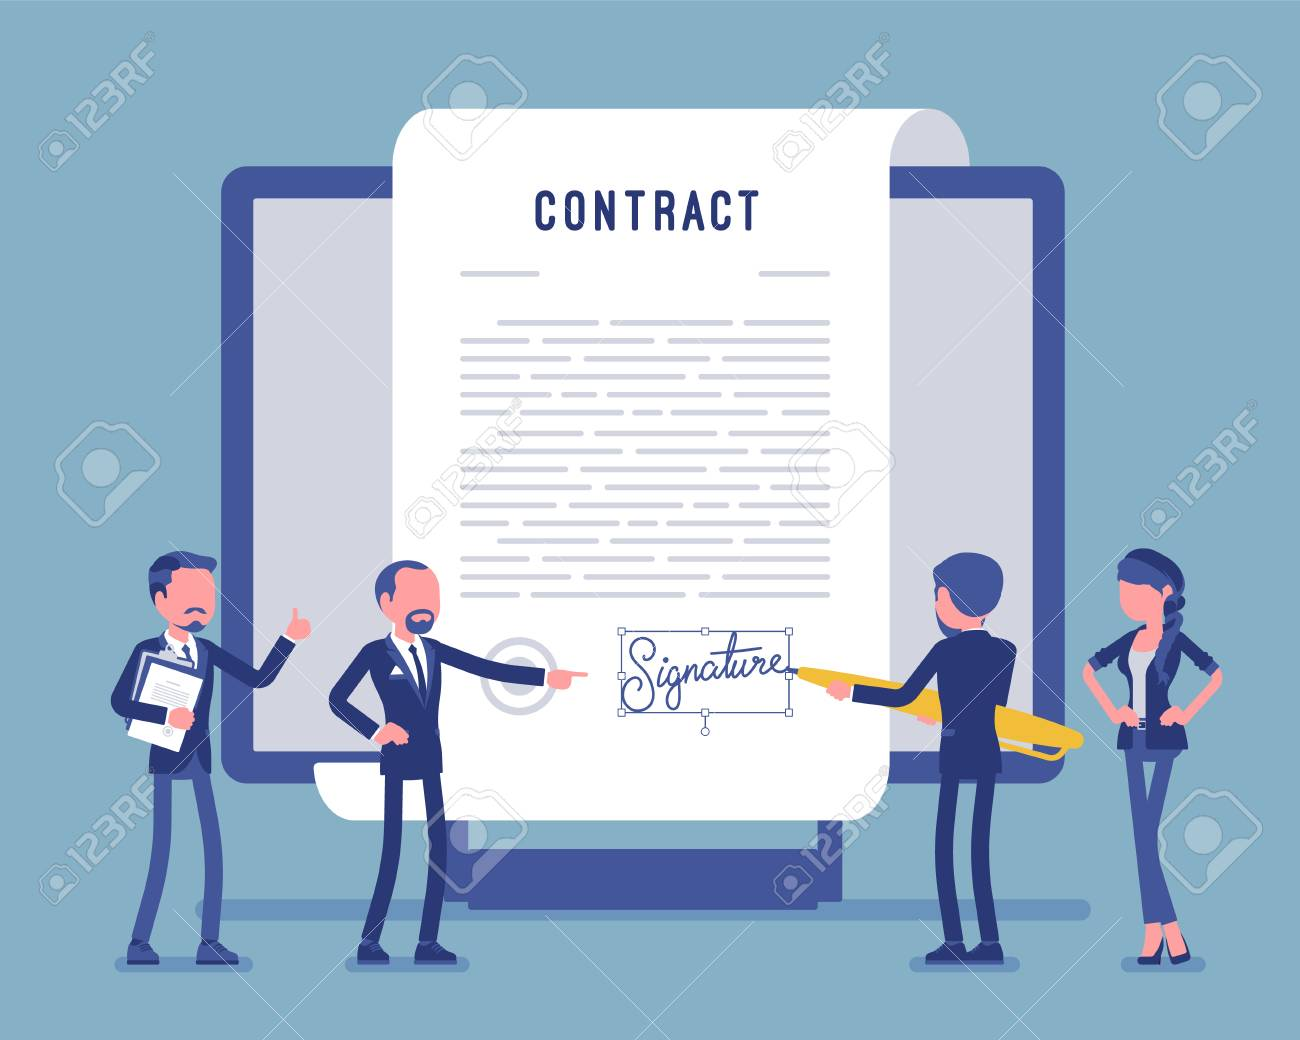 Electronic document signature, contract page on screen. Business people sign official paper, formal agreement, businessman with giant pen putting name. Vector illustration, faceless characters - 122503995